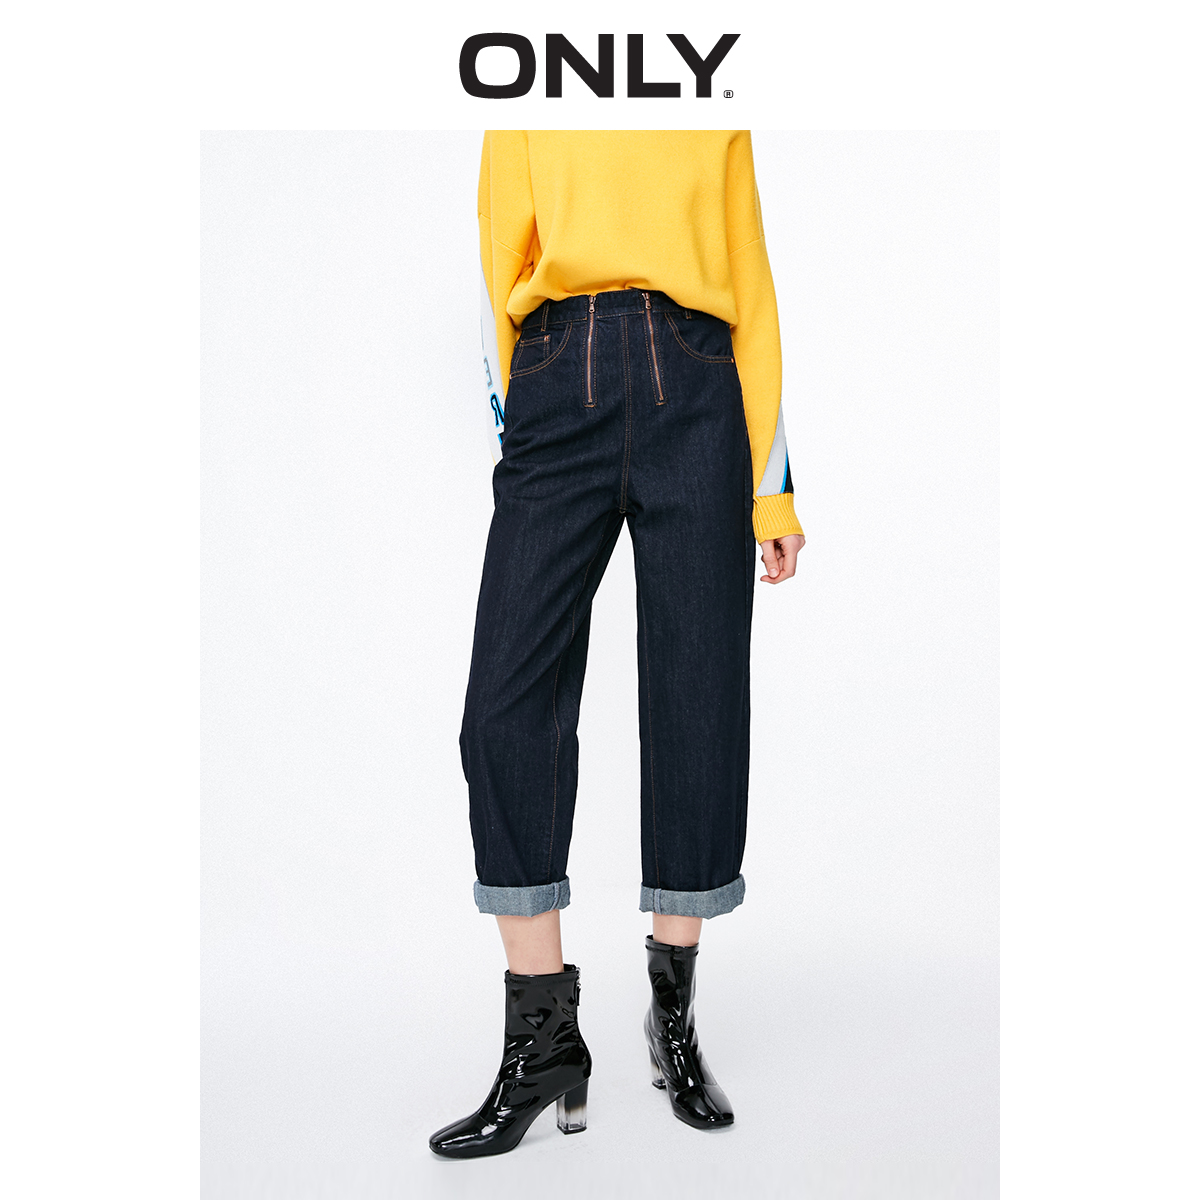 ONLY Women's Women's Loose Fit High-rise Zipped Crop Jeans | 119149598